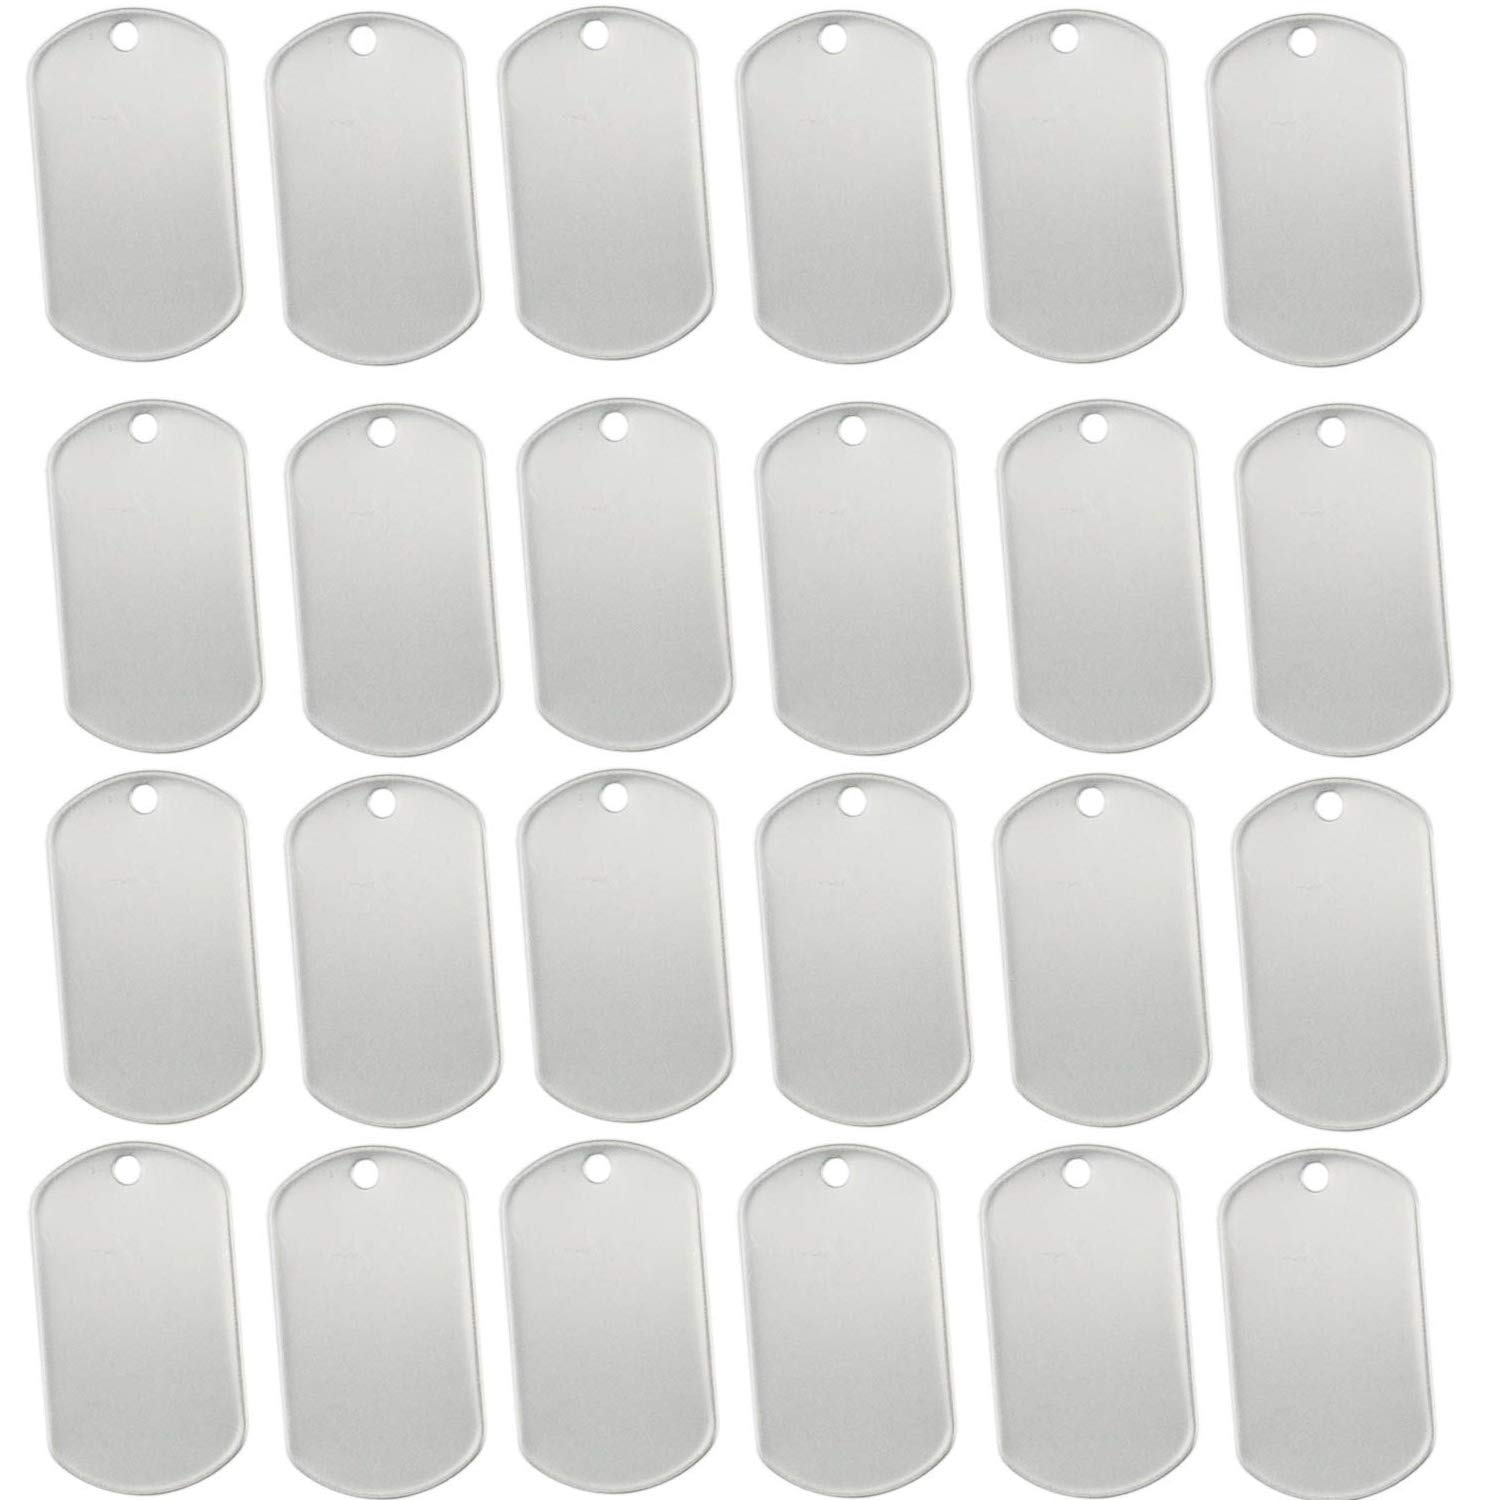 Pack of 100 Orgrimmar 100 pcs Shiny Stainless Steel Military spec Rolled Edge Backing Dog Tags Blank (Pack of 100)